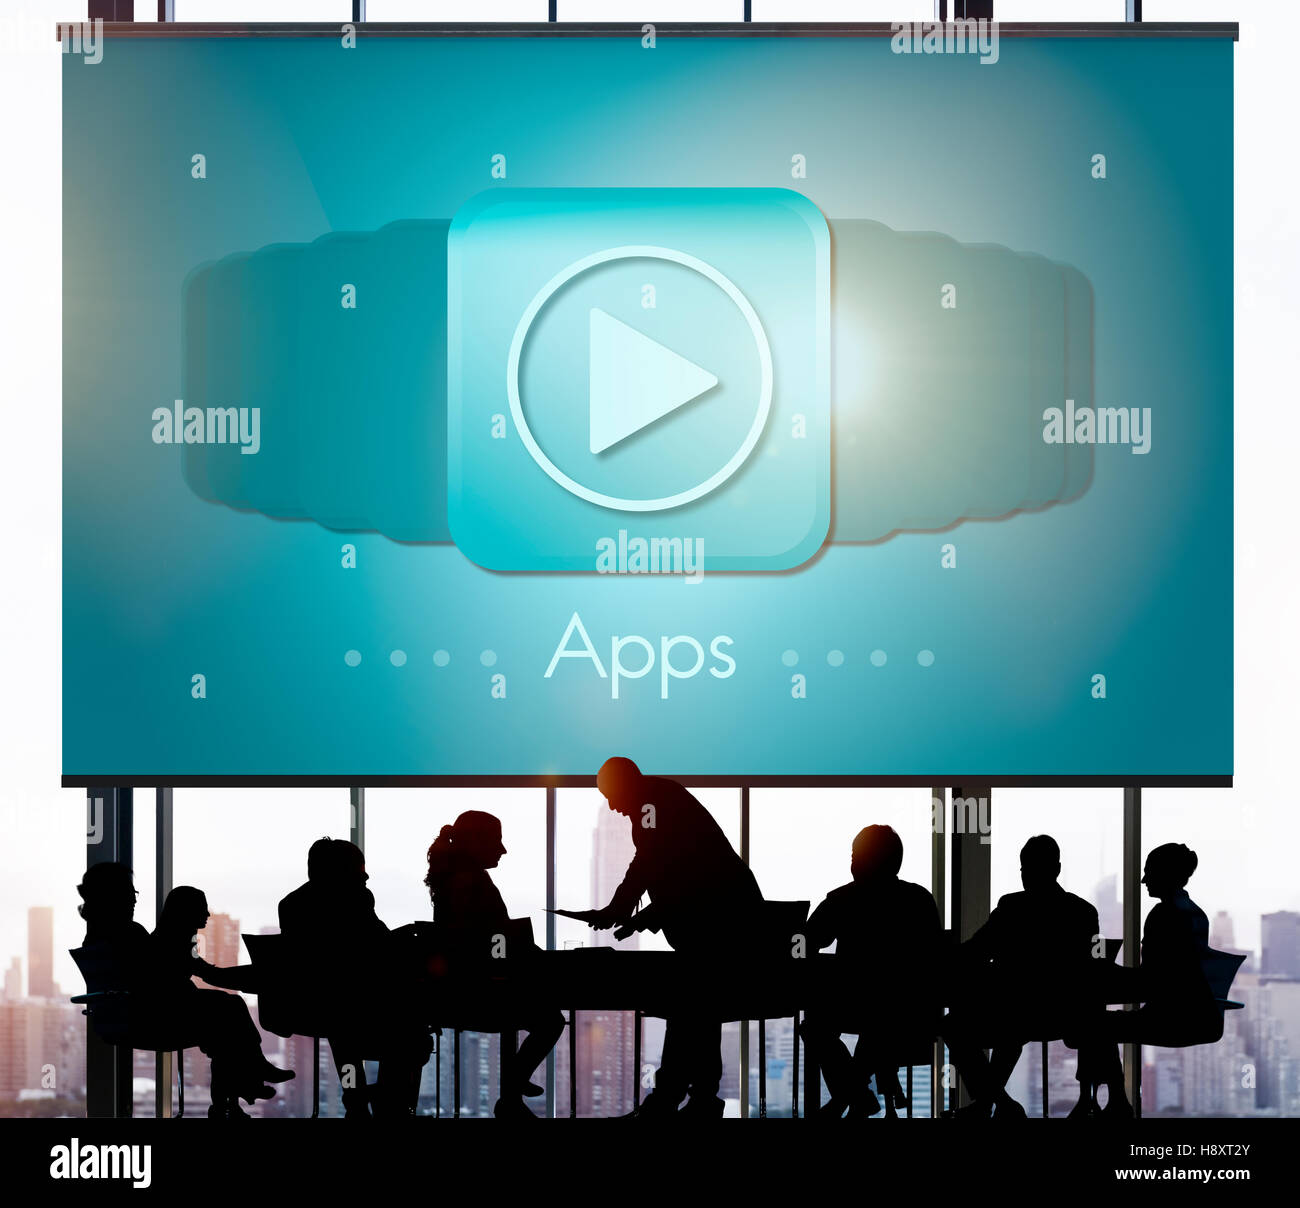 Applications Apps Multimedia Invention Devices Concept Stock Photo